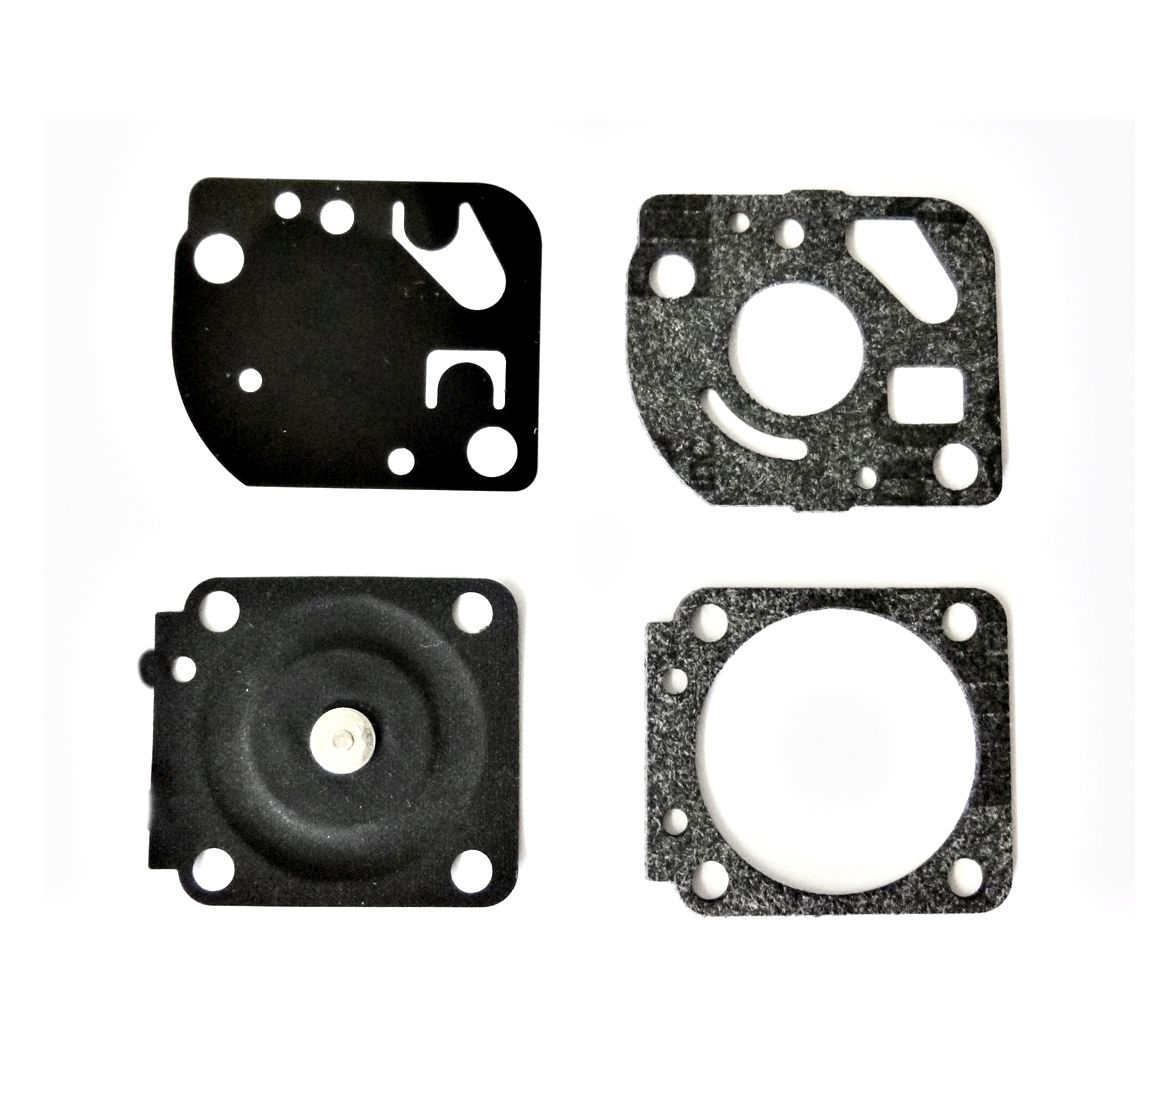 Ryobi Rh750 Hedge Trimmer Spares Diagram Shoulders Of Shoreham Parts Uk Carburettor Diaphragm Gasket Kit Rbc26sesb